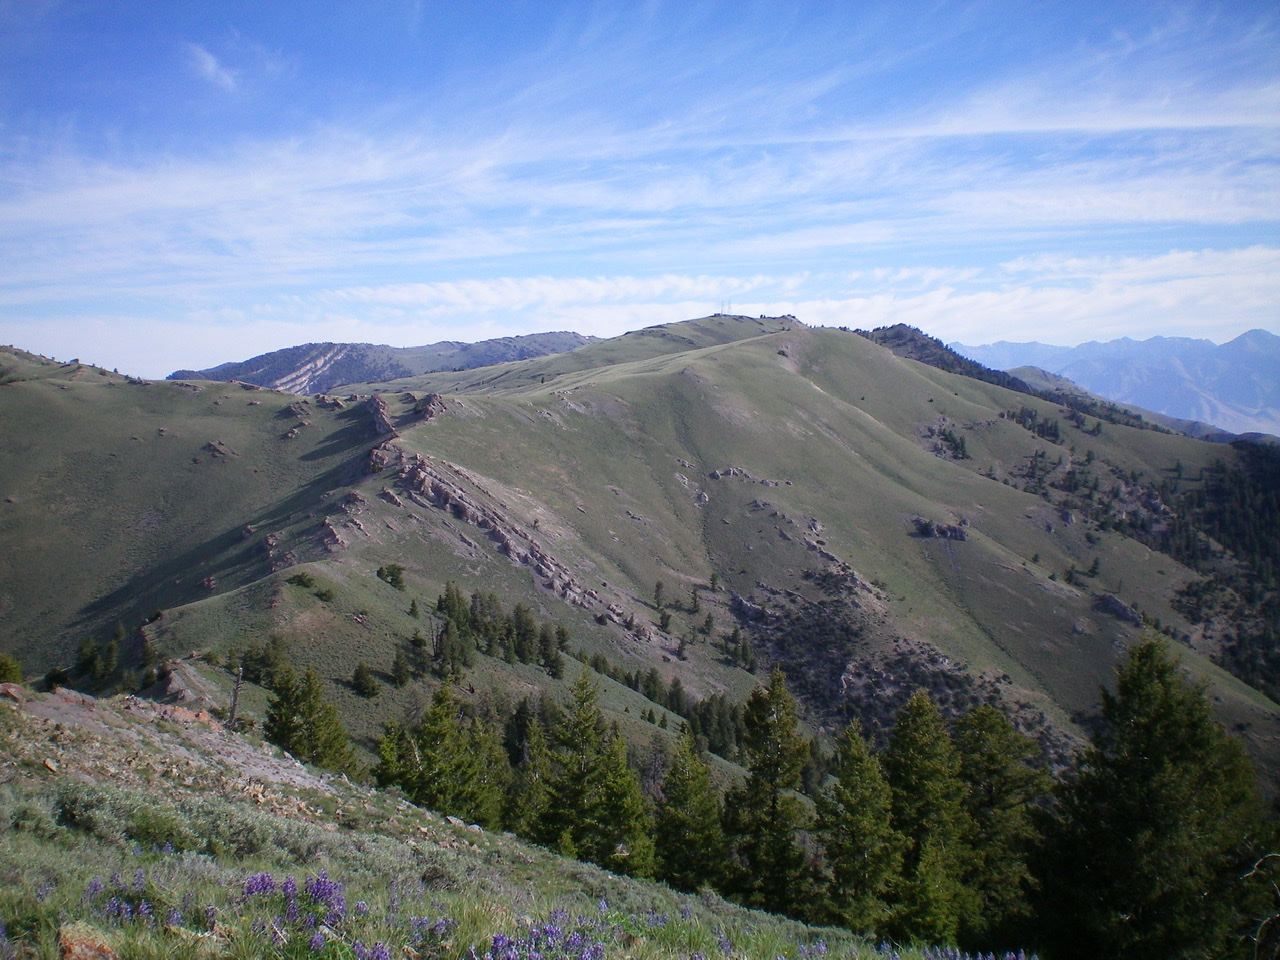 The South Ridge of Howe Peak as viewed from Peak 8383. The antenna-clad summit is just right of center. Livingston Douglas Photo